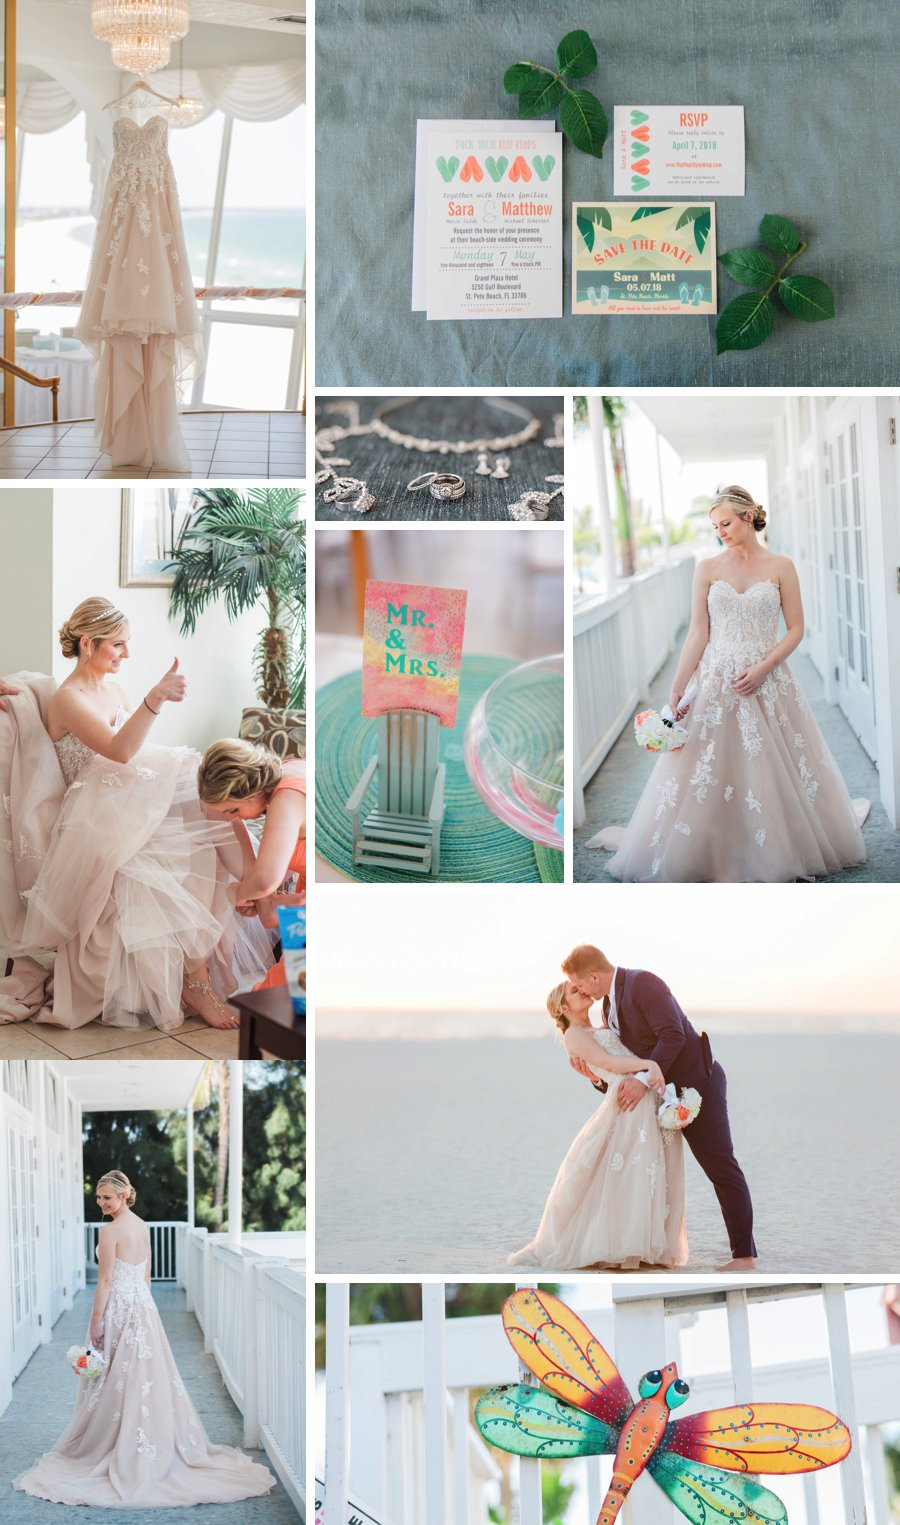 Real Wedding: Tropical colour on the beach | 5 STAR WEDDING BLOG